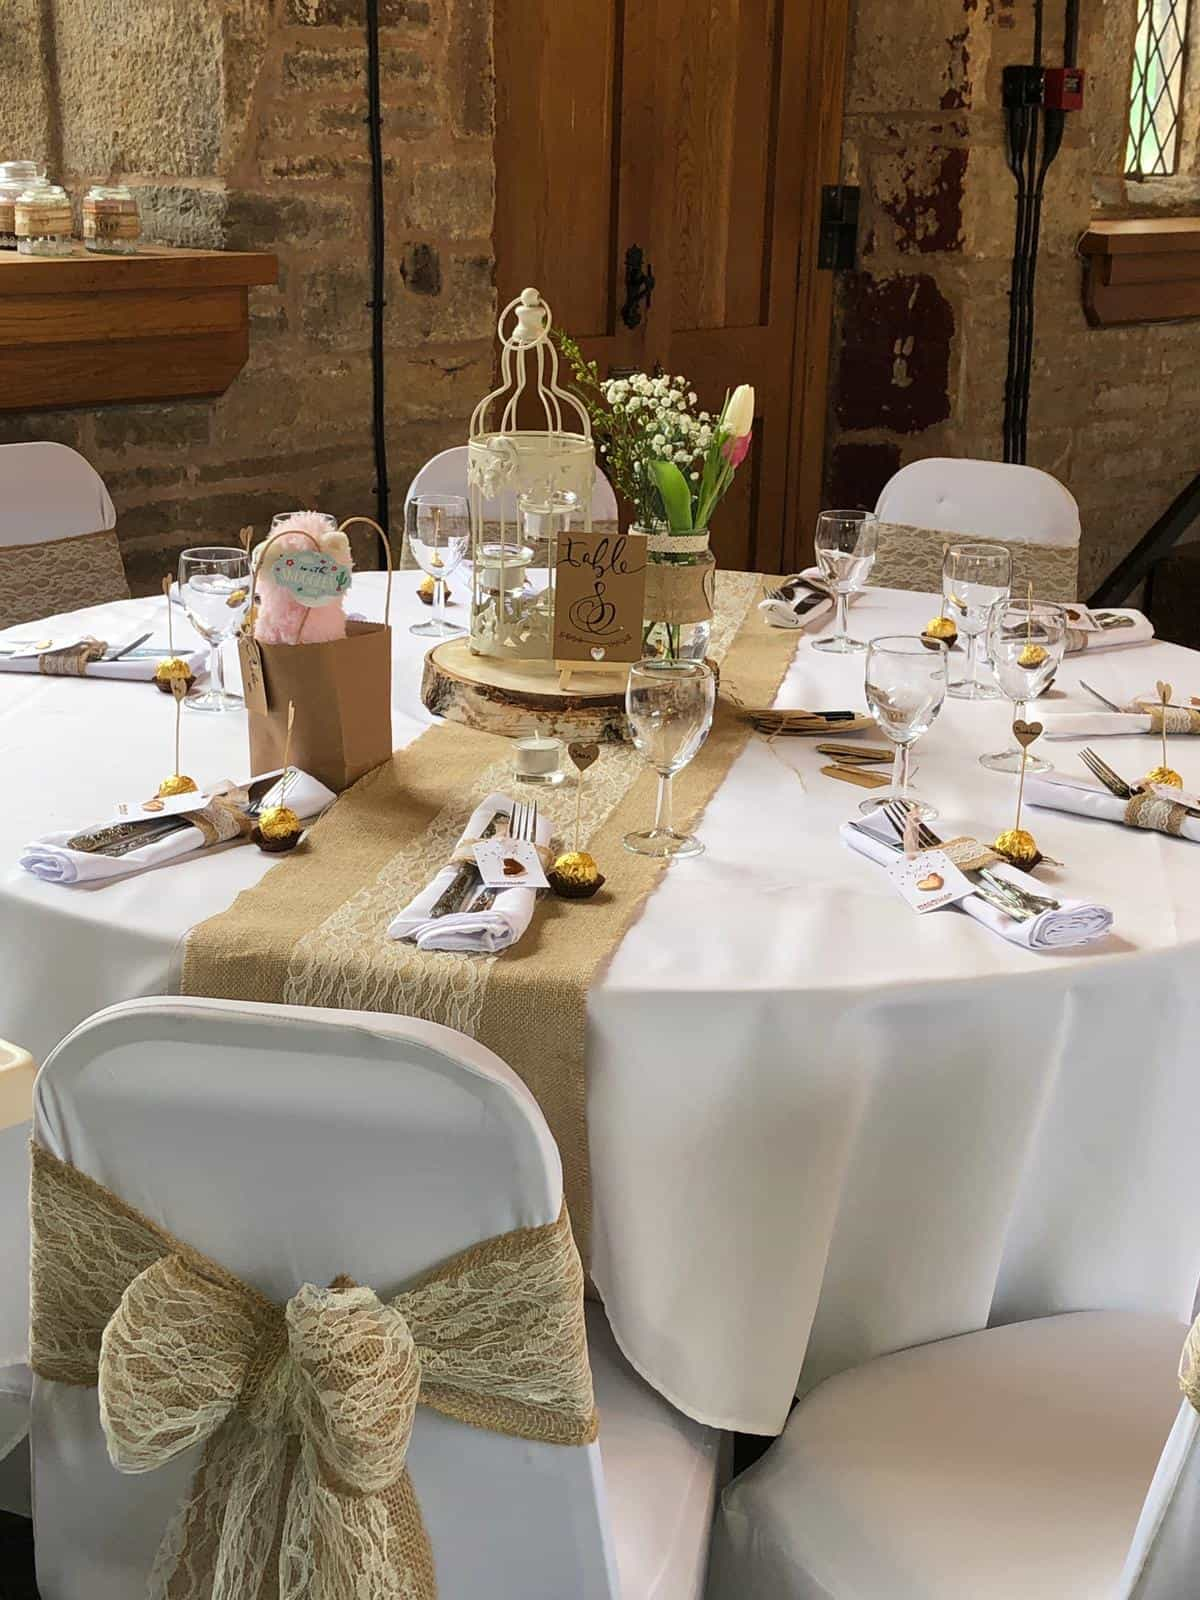 Wedding breakfast table set with hessian sashes and rustic decor